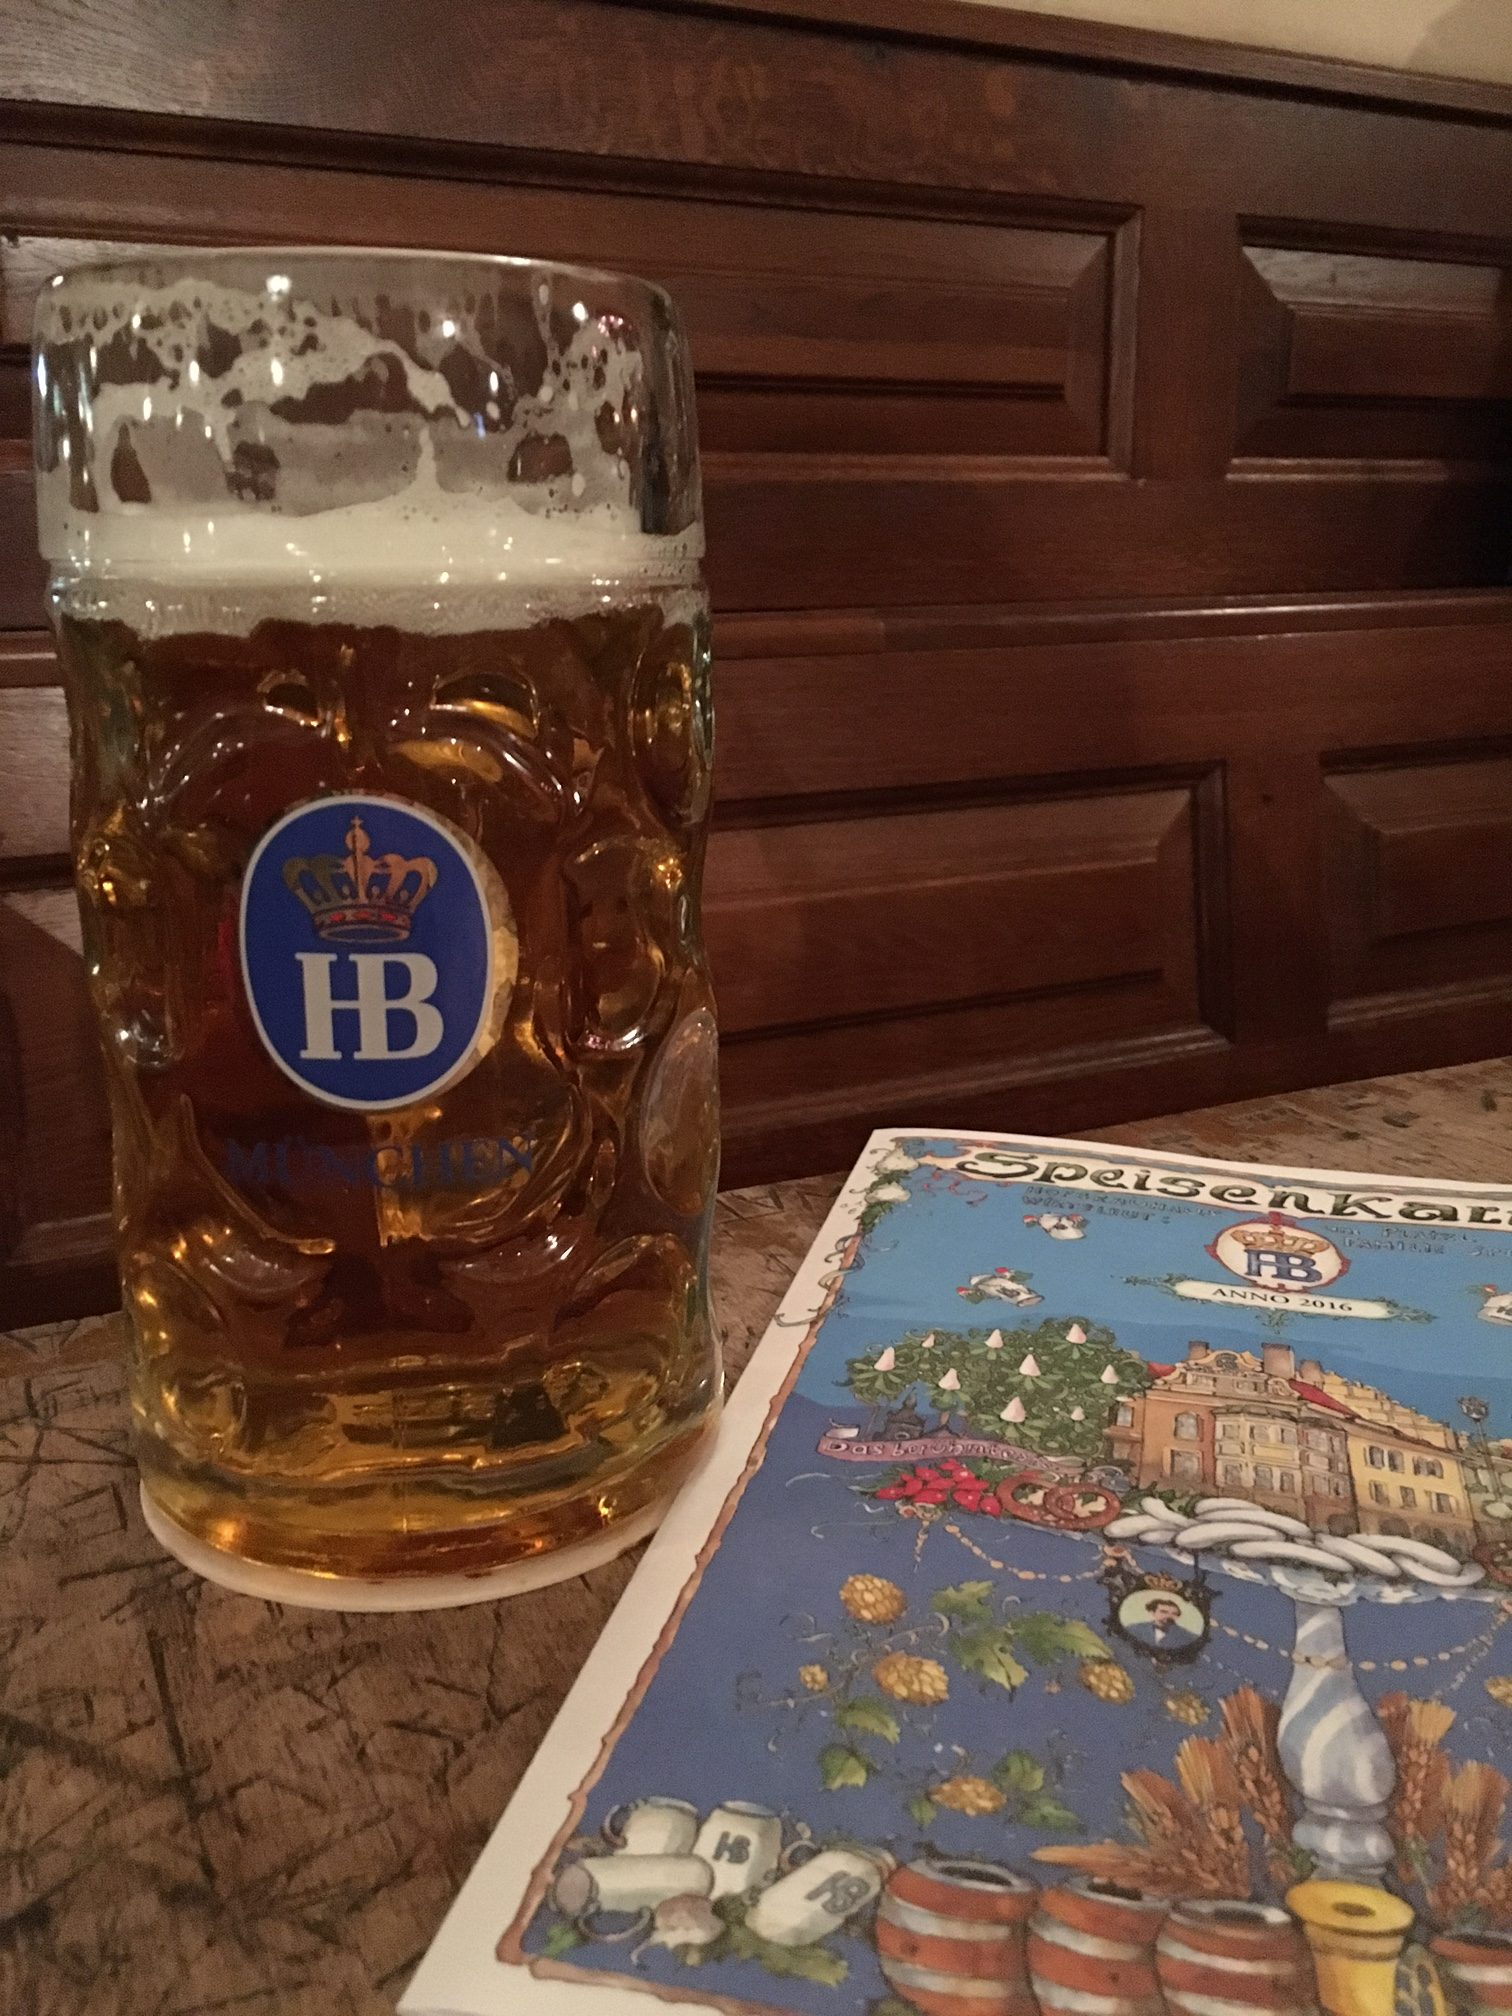 One liter of bier at Hofbrauhaus Munchen. (photo by Cat Stelzer)